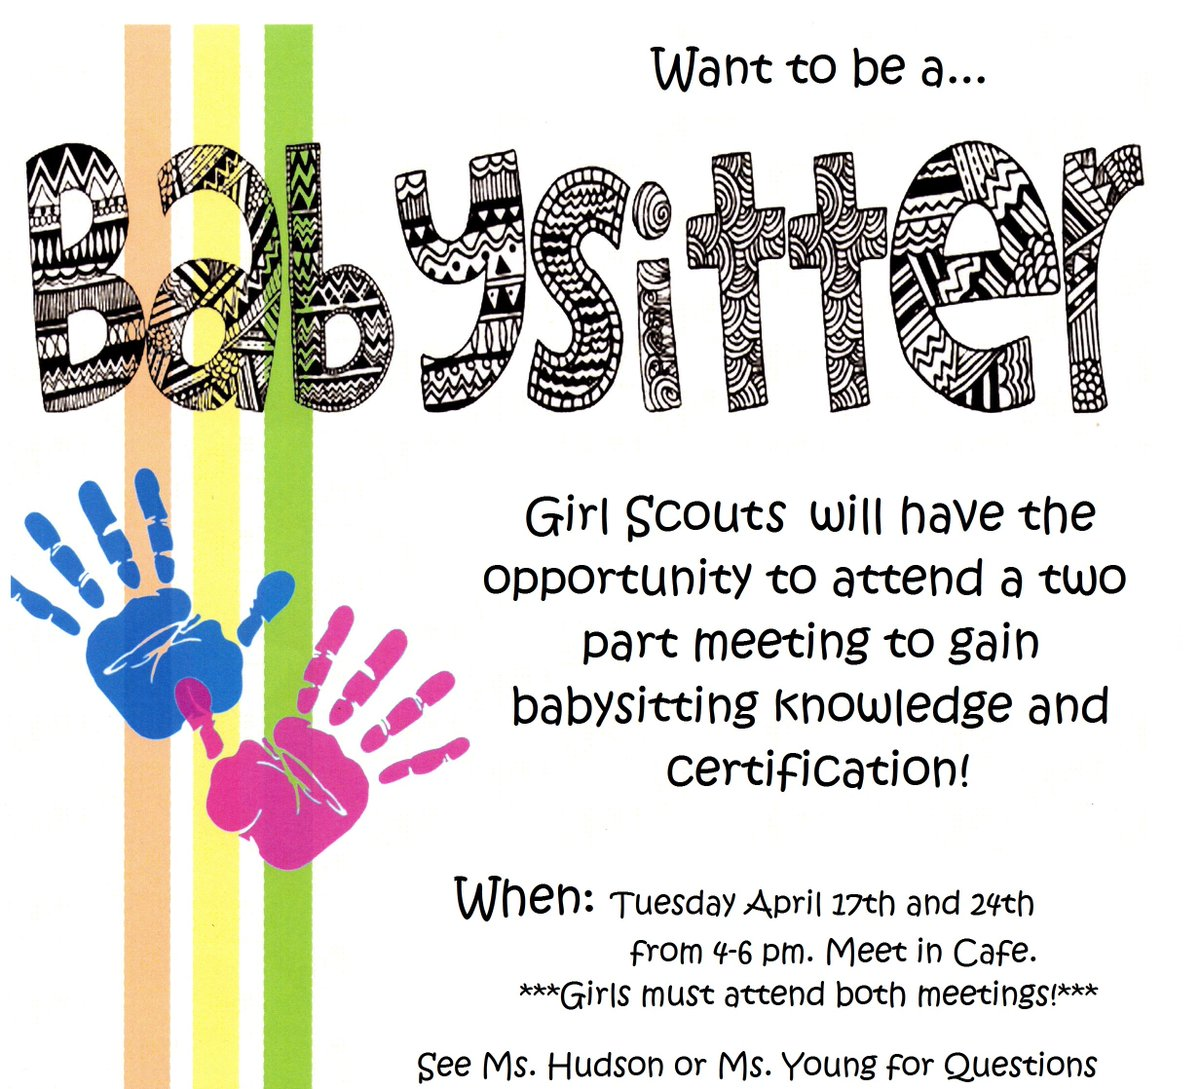 if so all registered girl scouts should attend this two part babysitter certification on april 17th 24th believeinagirlpictwittercomg90jv1auwx